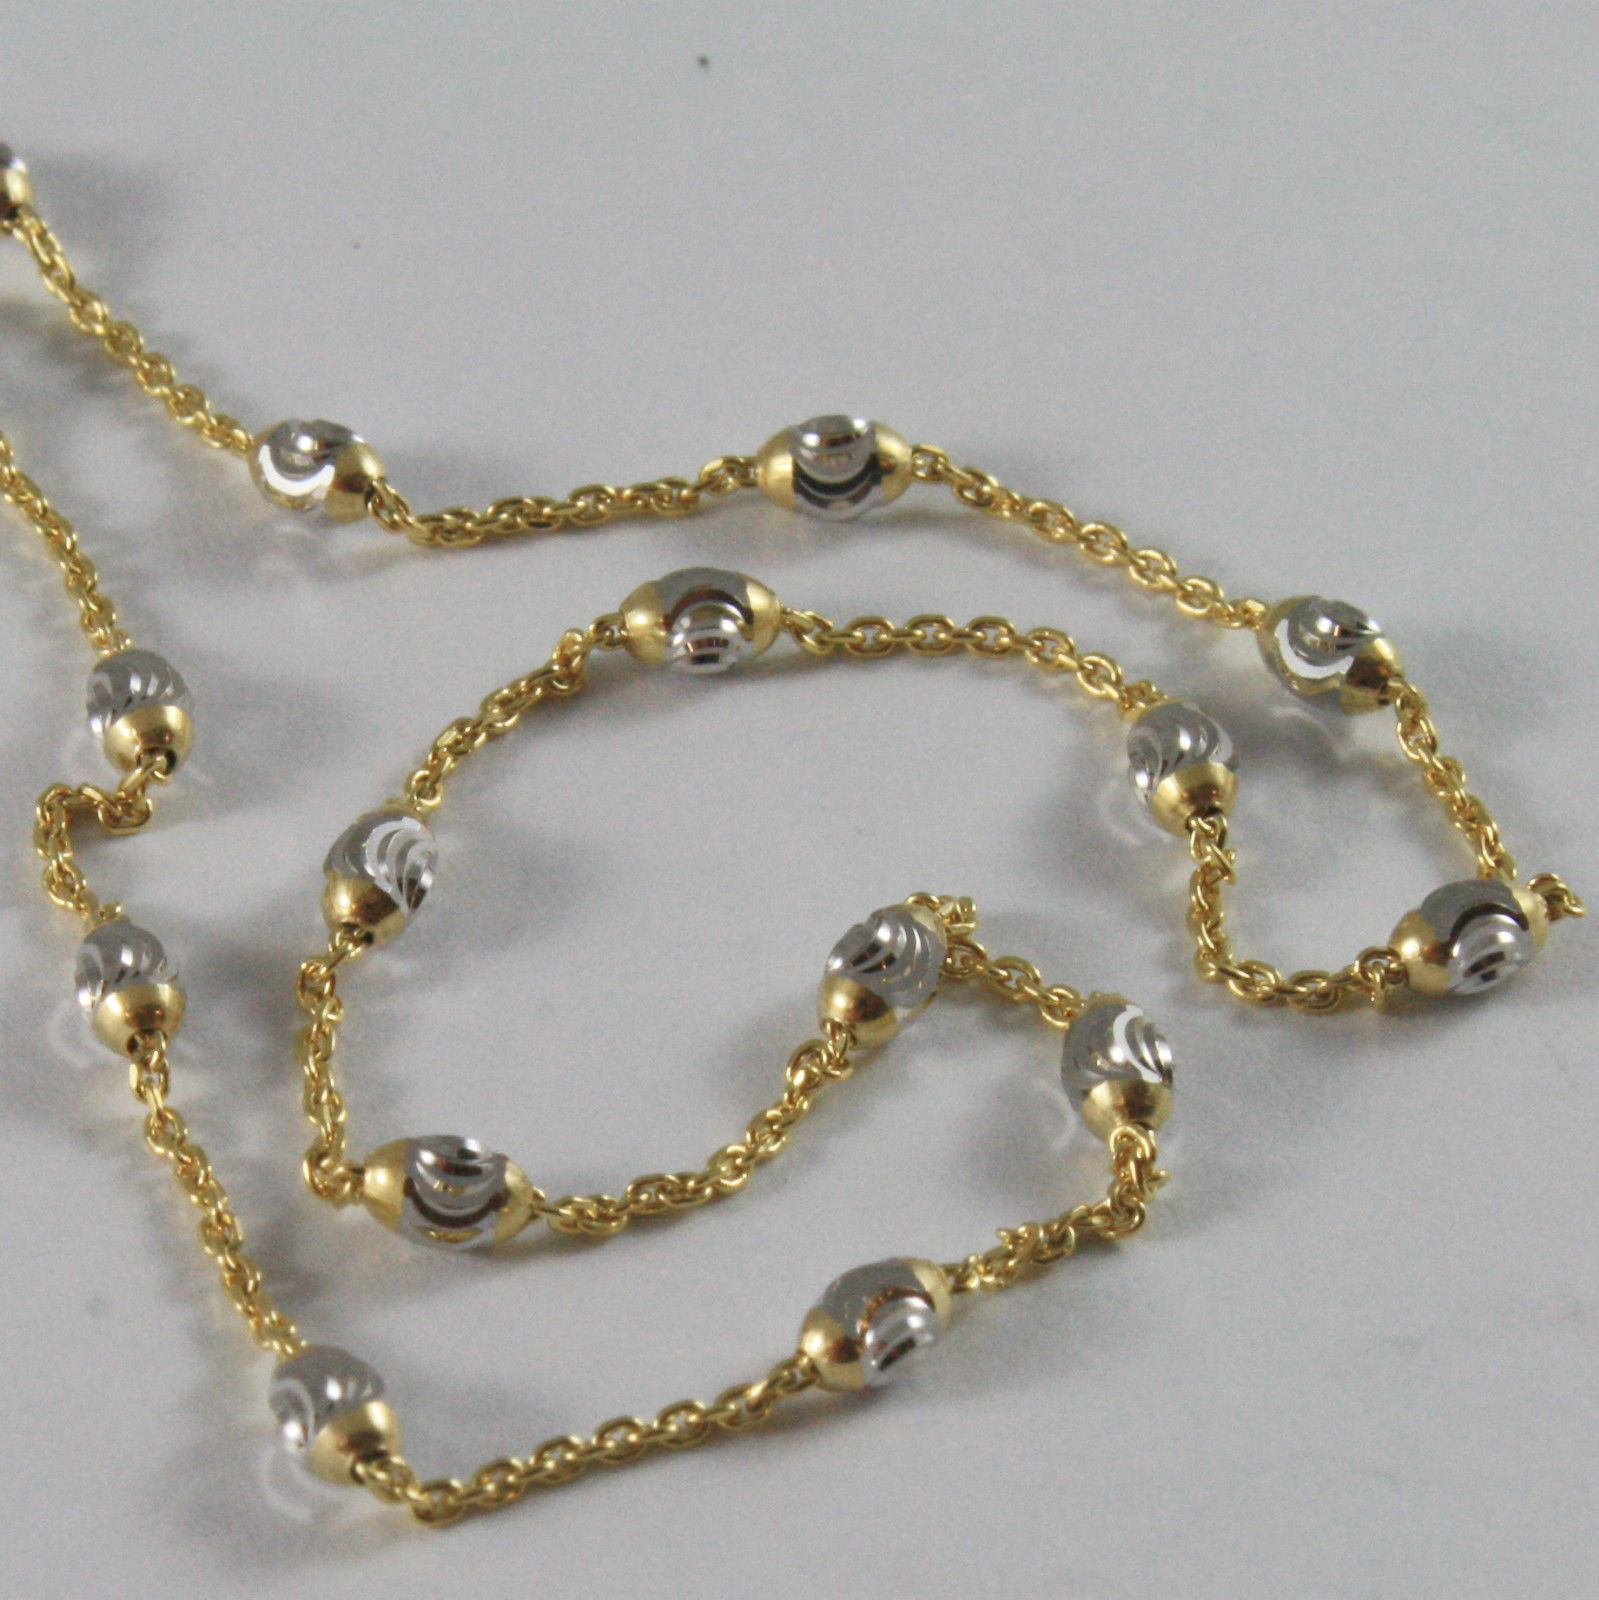 SOLID 18K YELLOW WHITE GOLD CHAIN NECKLACE MINI BALLS LINK 15.75 MADE IN ITALY